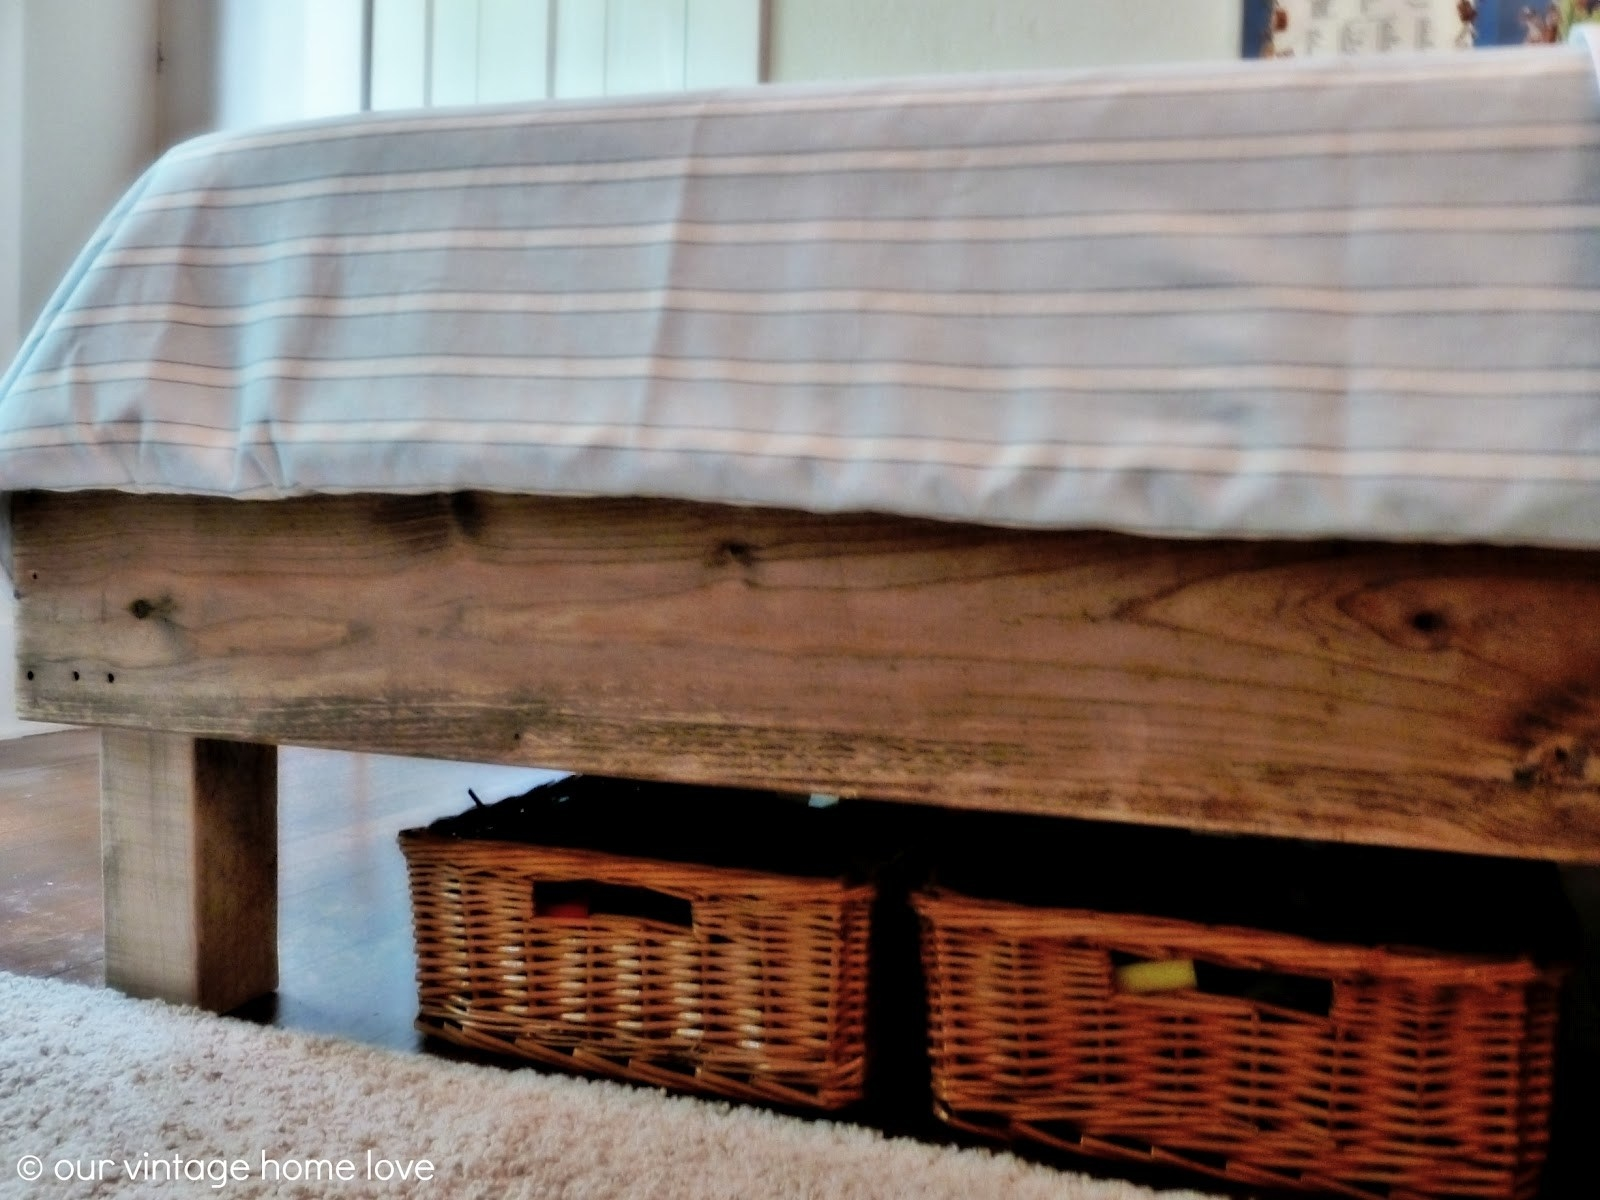 Make Wooden Bed Frame Stop Squeaking